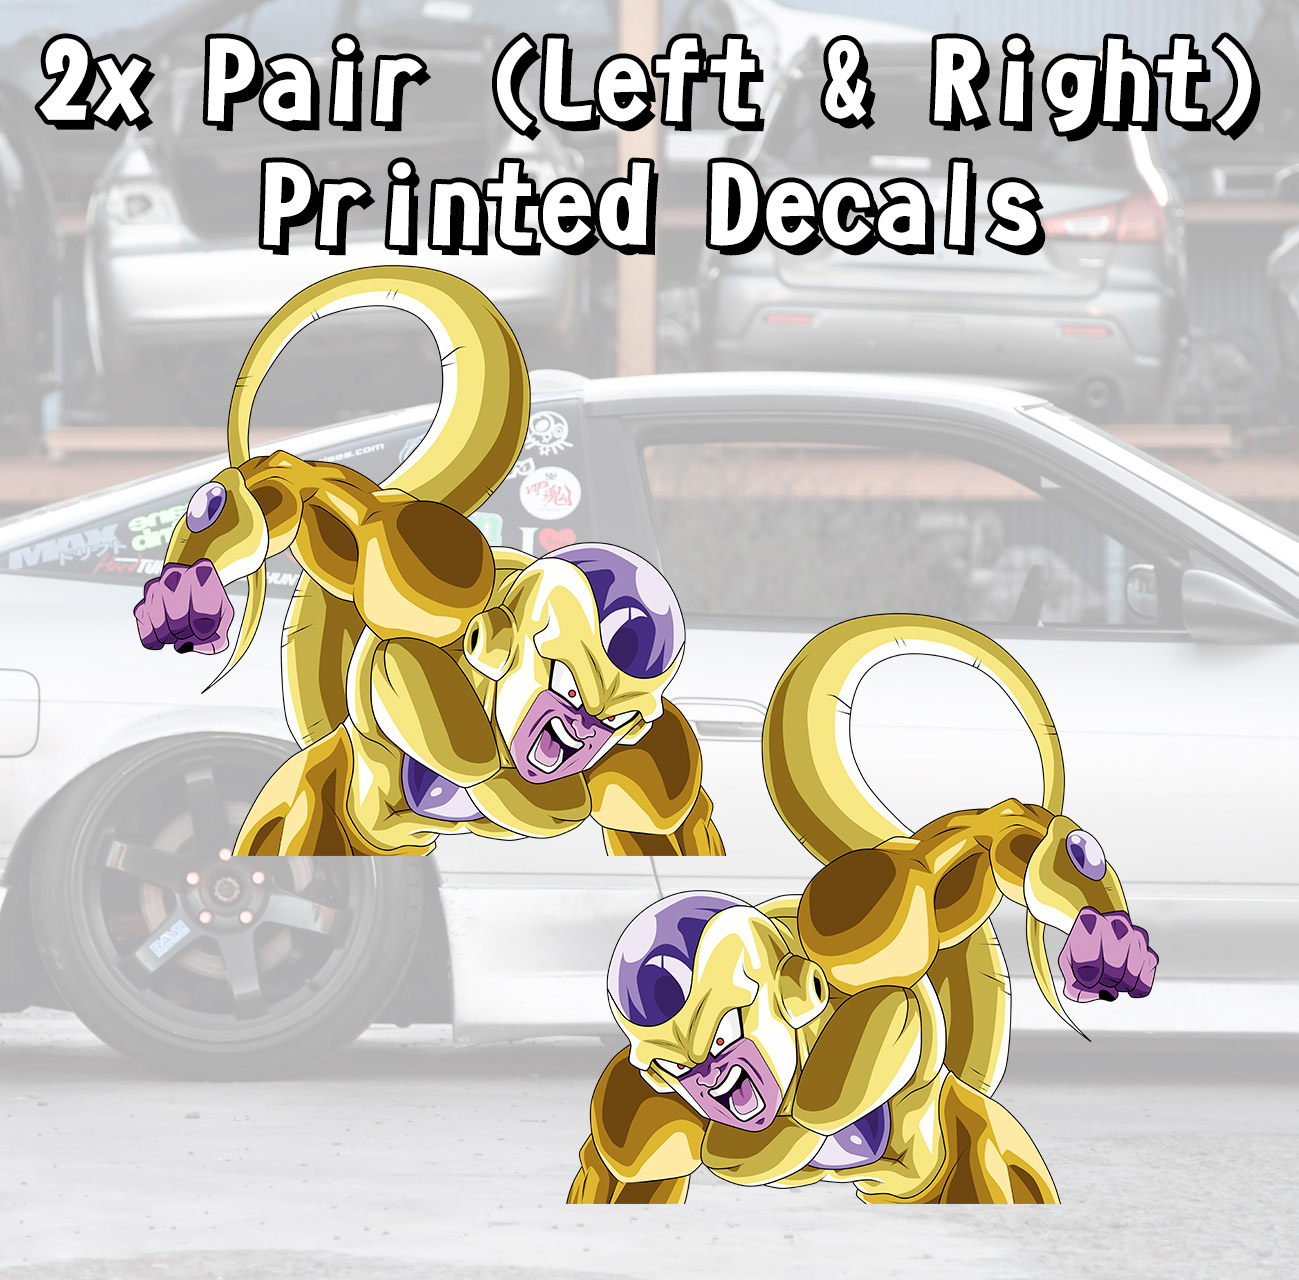 2x Pair Side Frieza v1 Golden Freezer Emperor Universe 7 Goku Saiyan Dragon Z Super DBZ Kai Anime Manga Printed Car Vinyl Sticker Decal